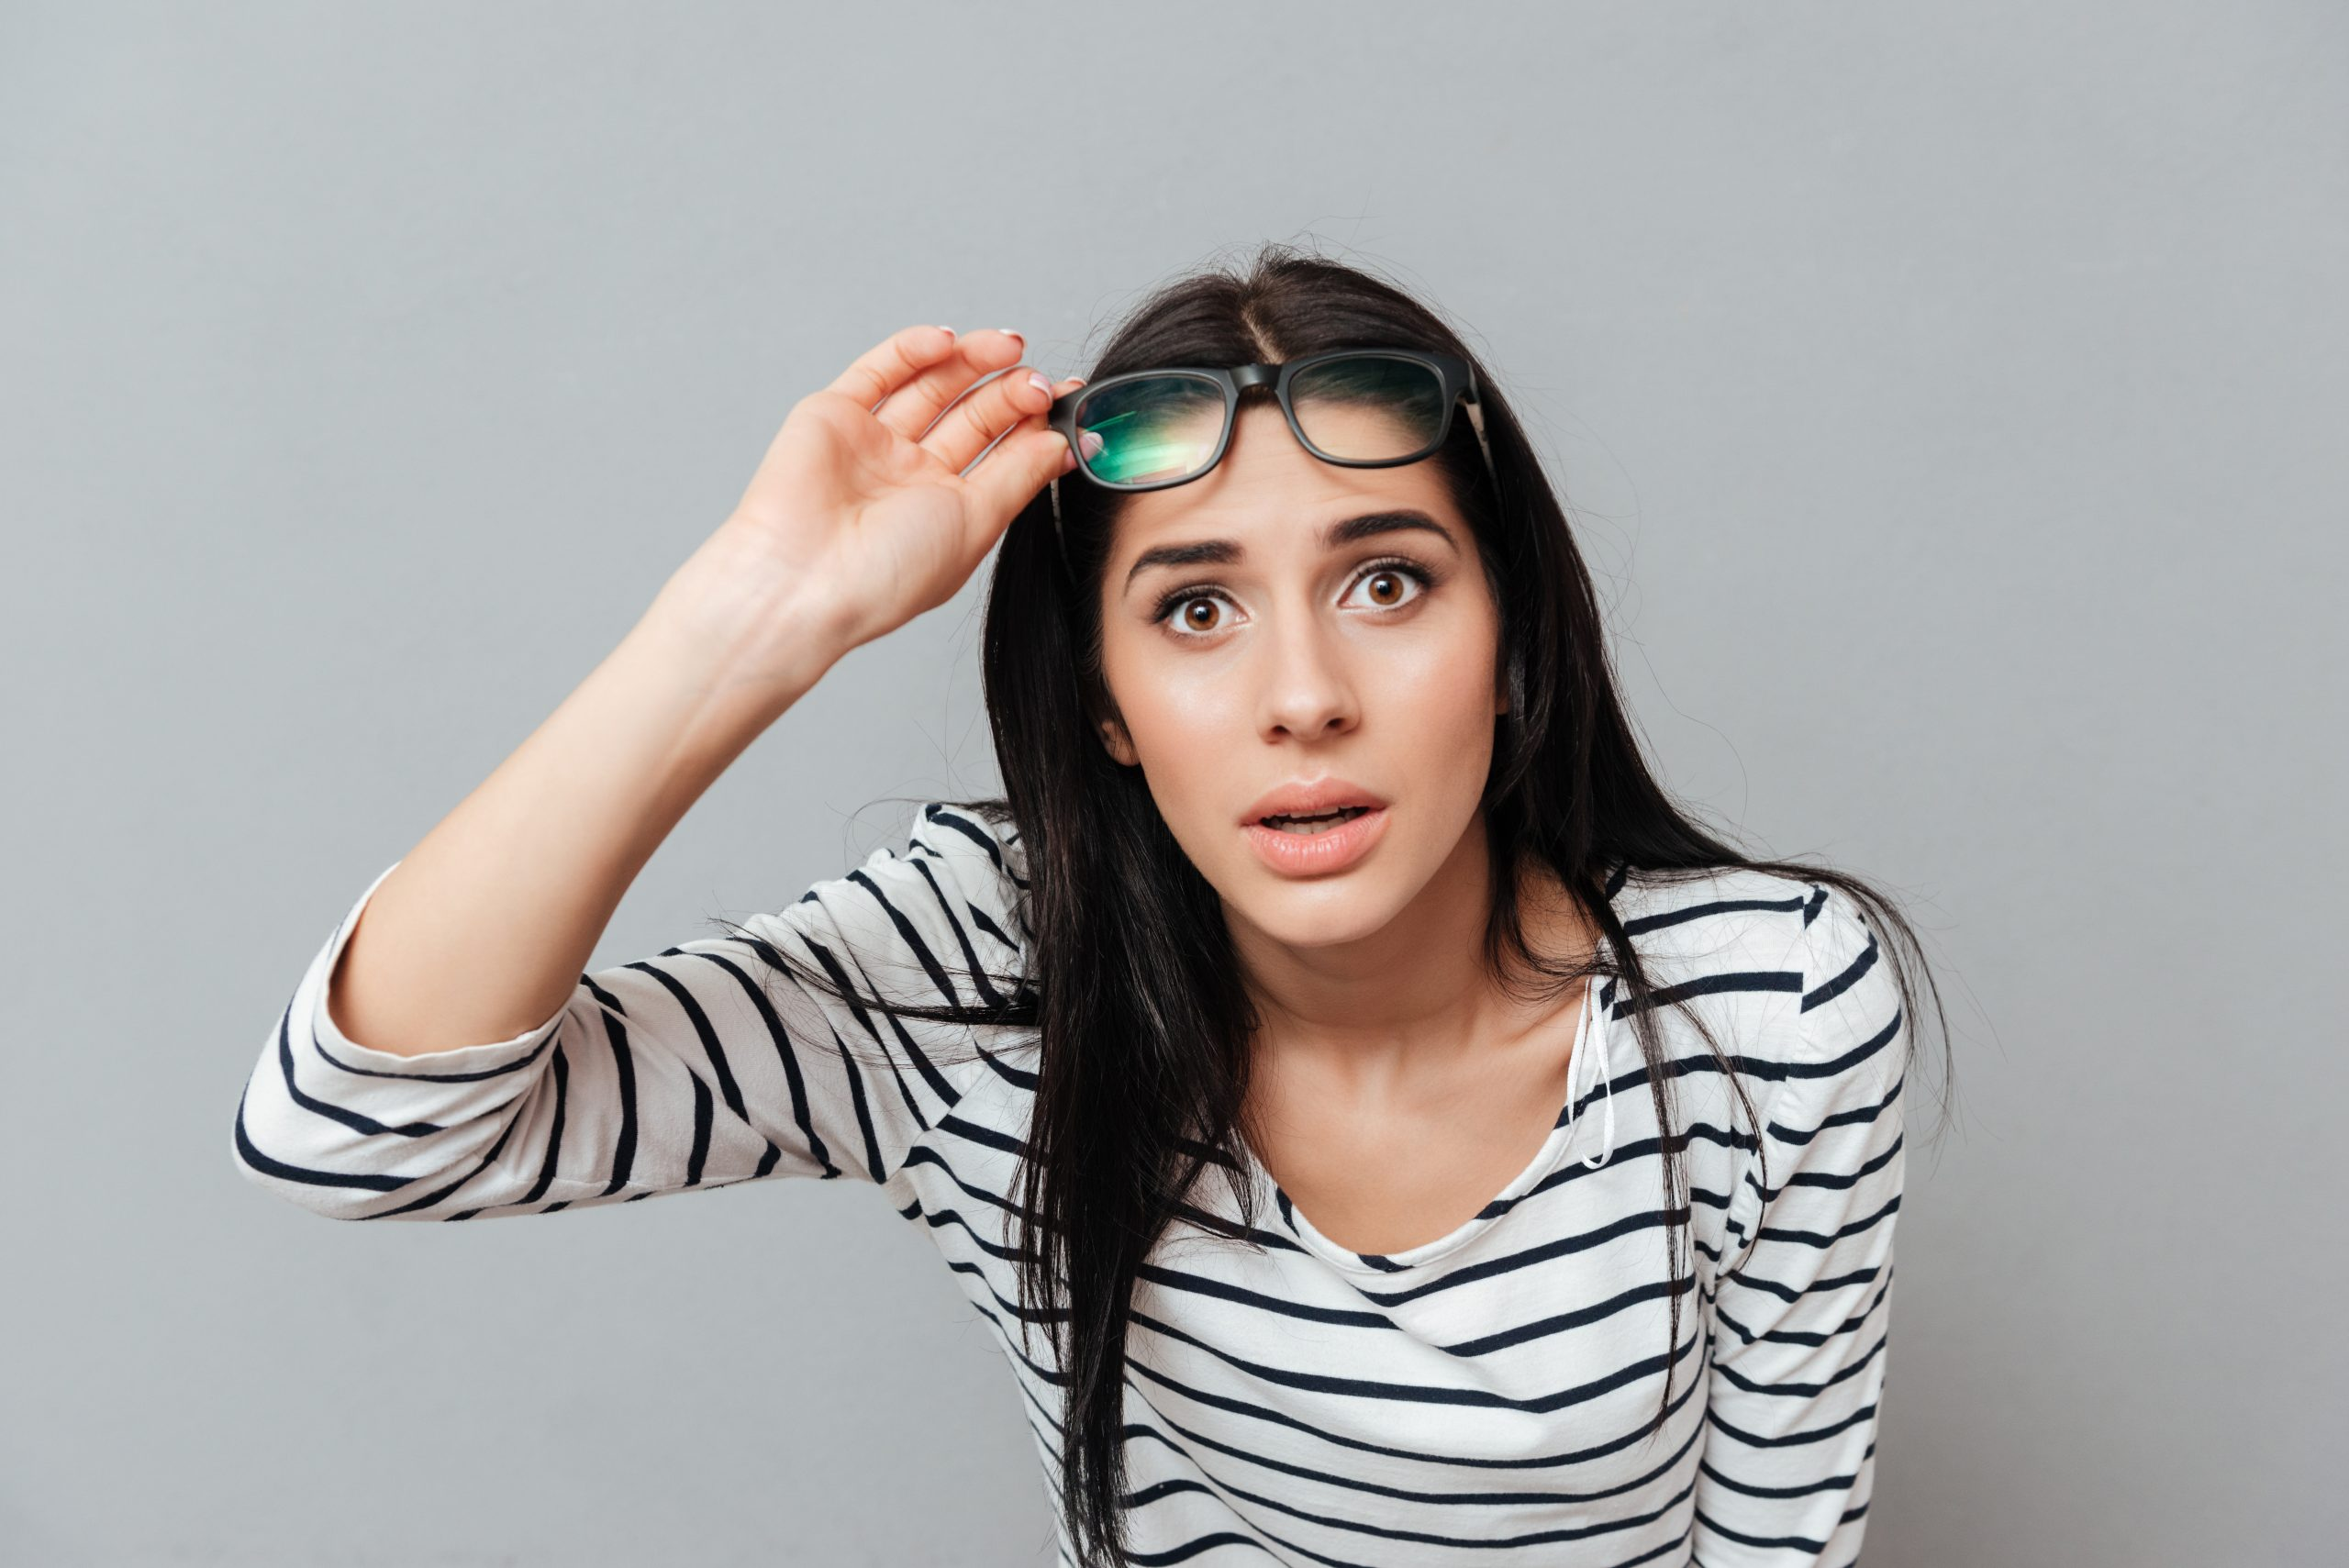 Young woman wearing eyeglasses shocked over grey background. Looking at camera.